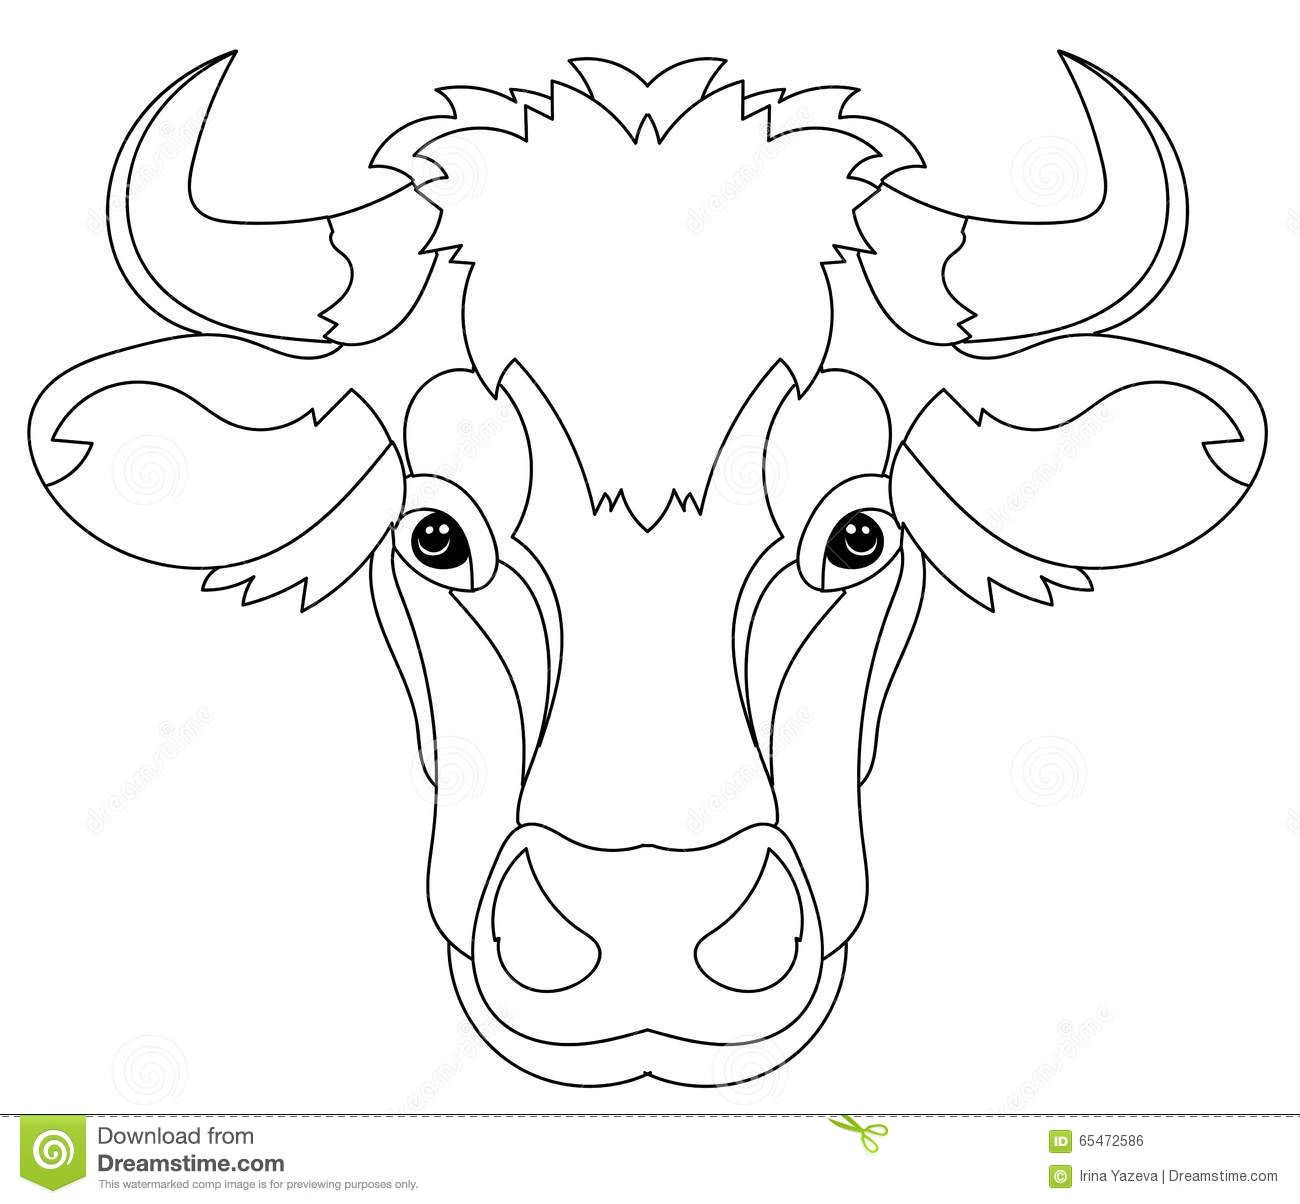 cow head coloring page decorated cow heads google search cow head how to coloring head cow page